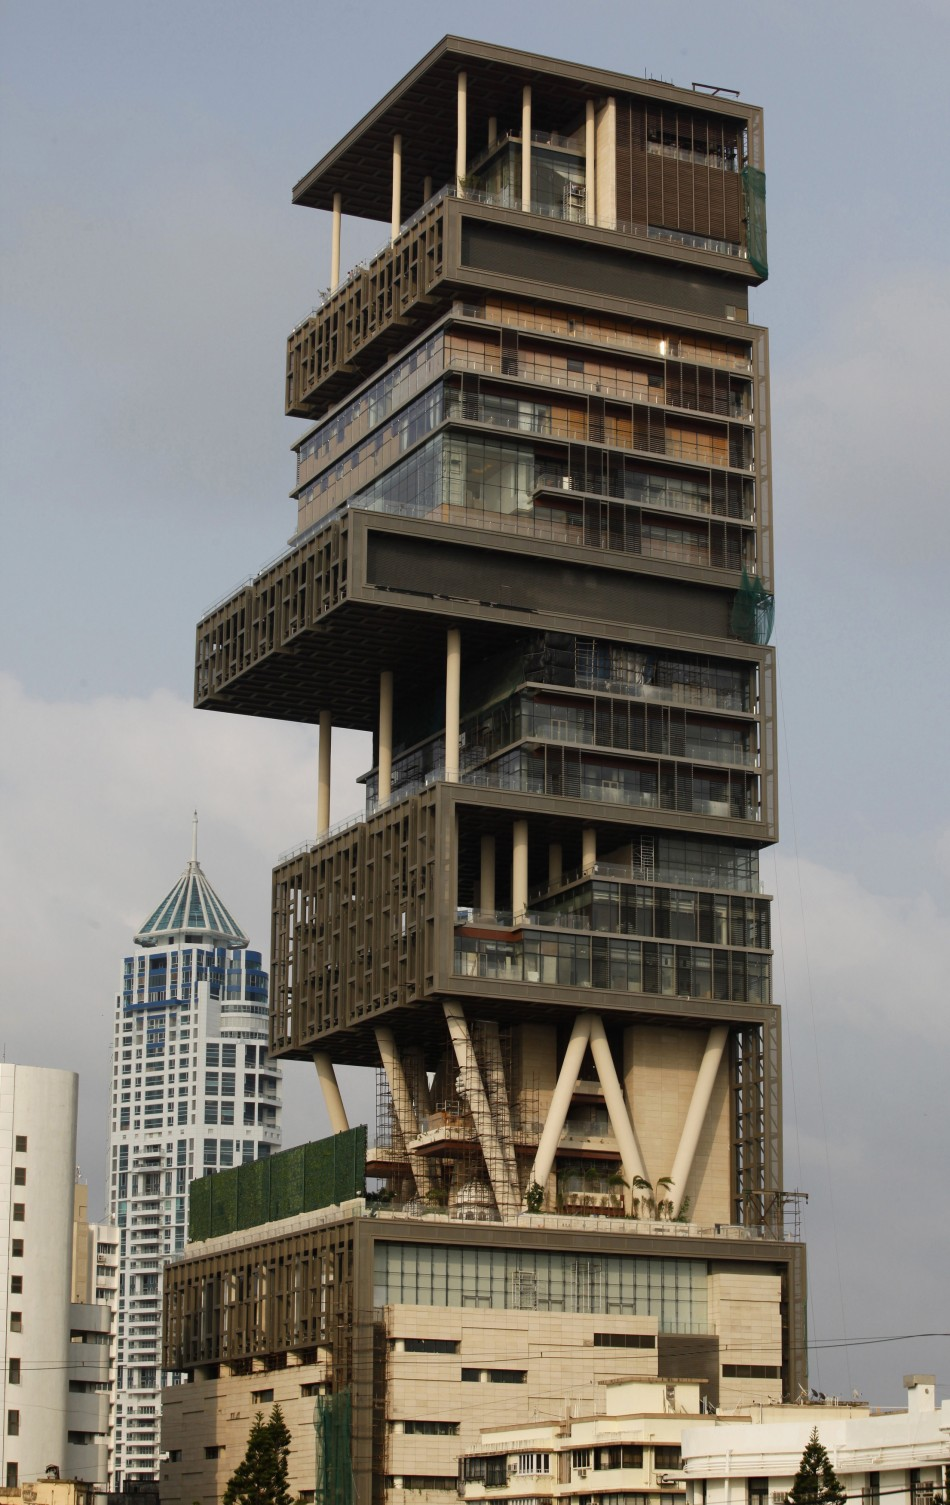 Worlds Most Expensive House Ambani Family Unveil Interior of Antilia for First Time